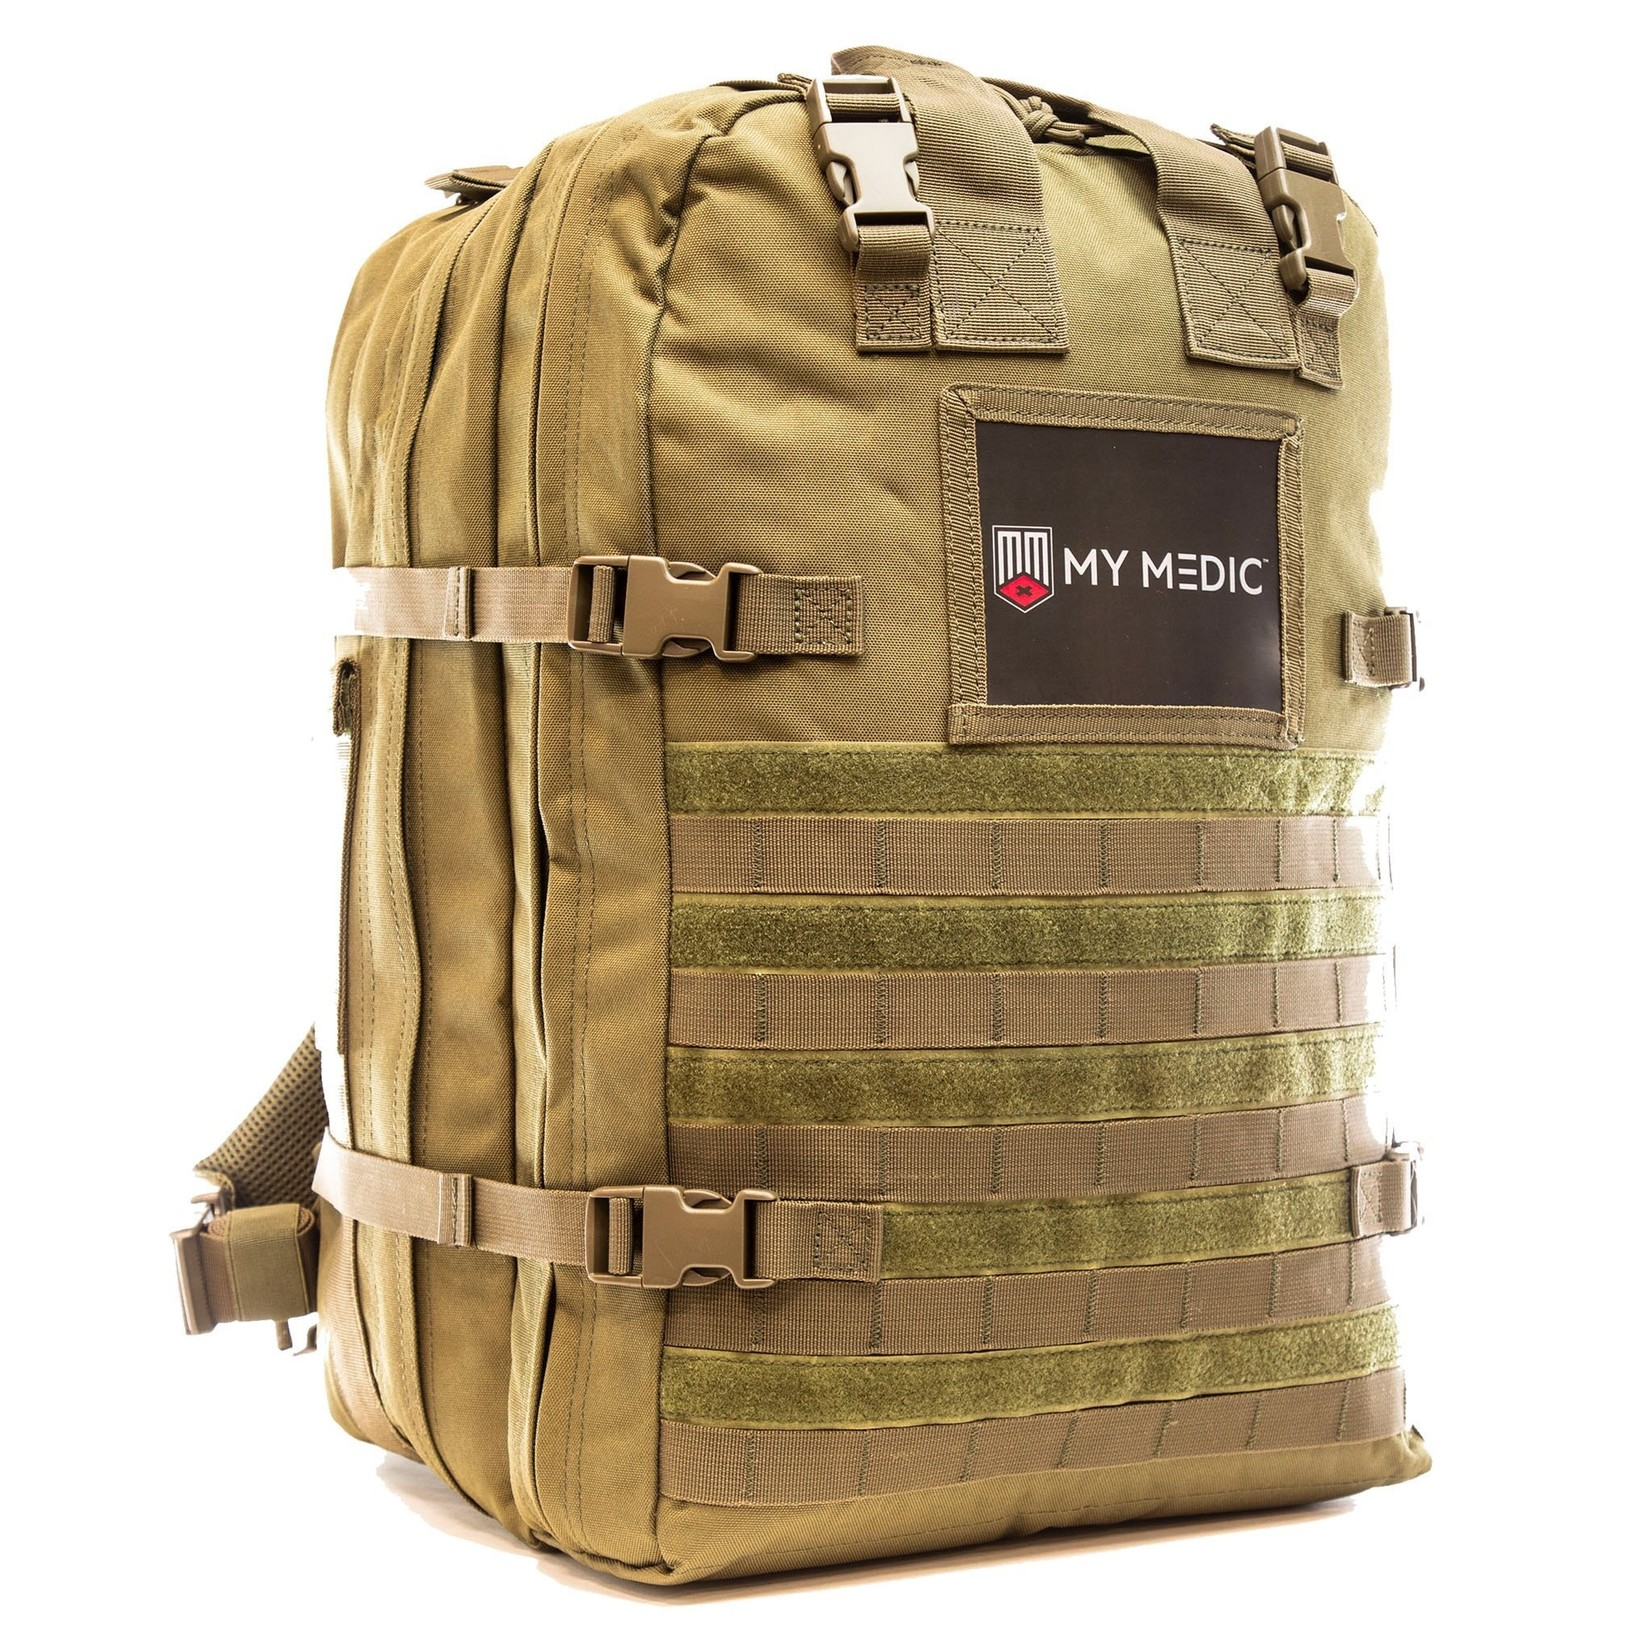 MyMedic The Medic First Aid Kit